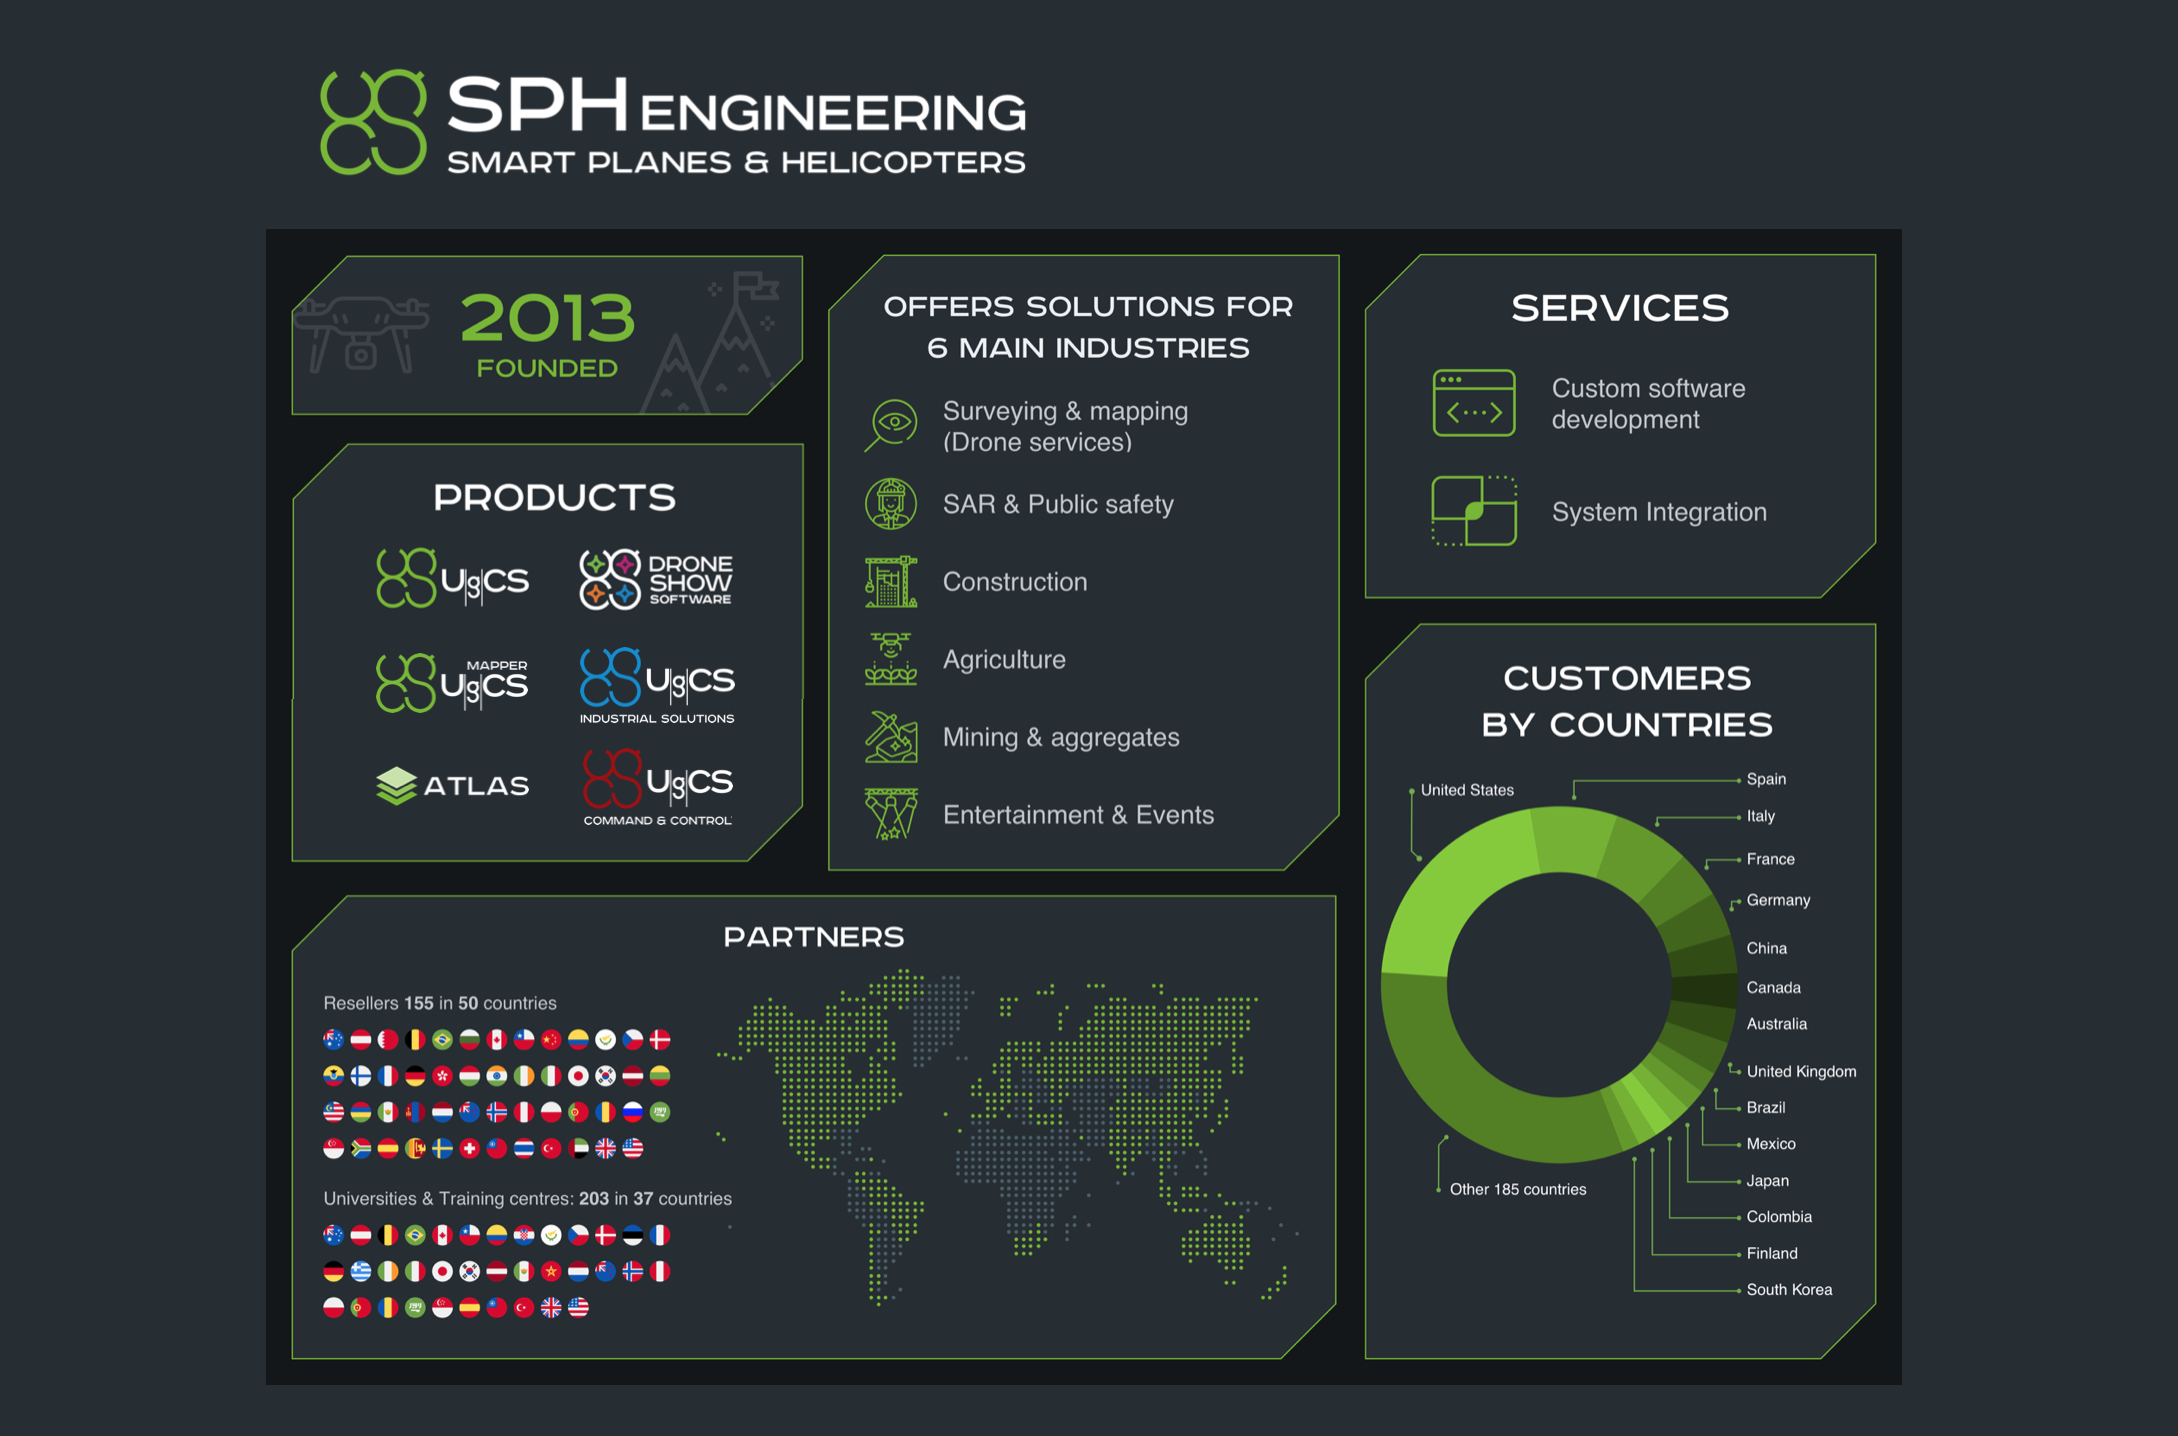 SPH Engineering facts and figures